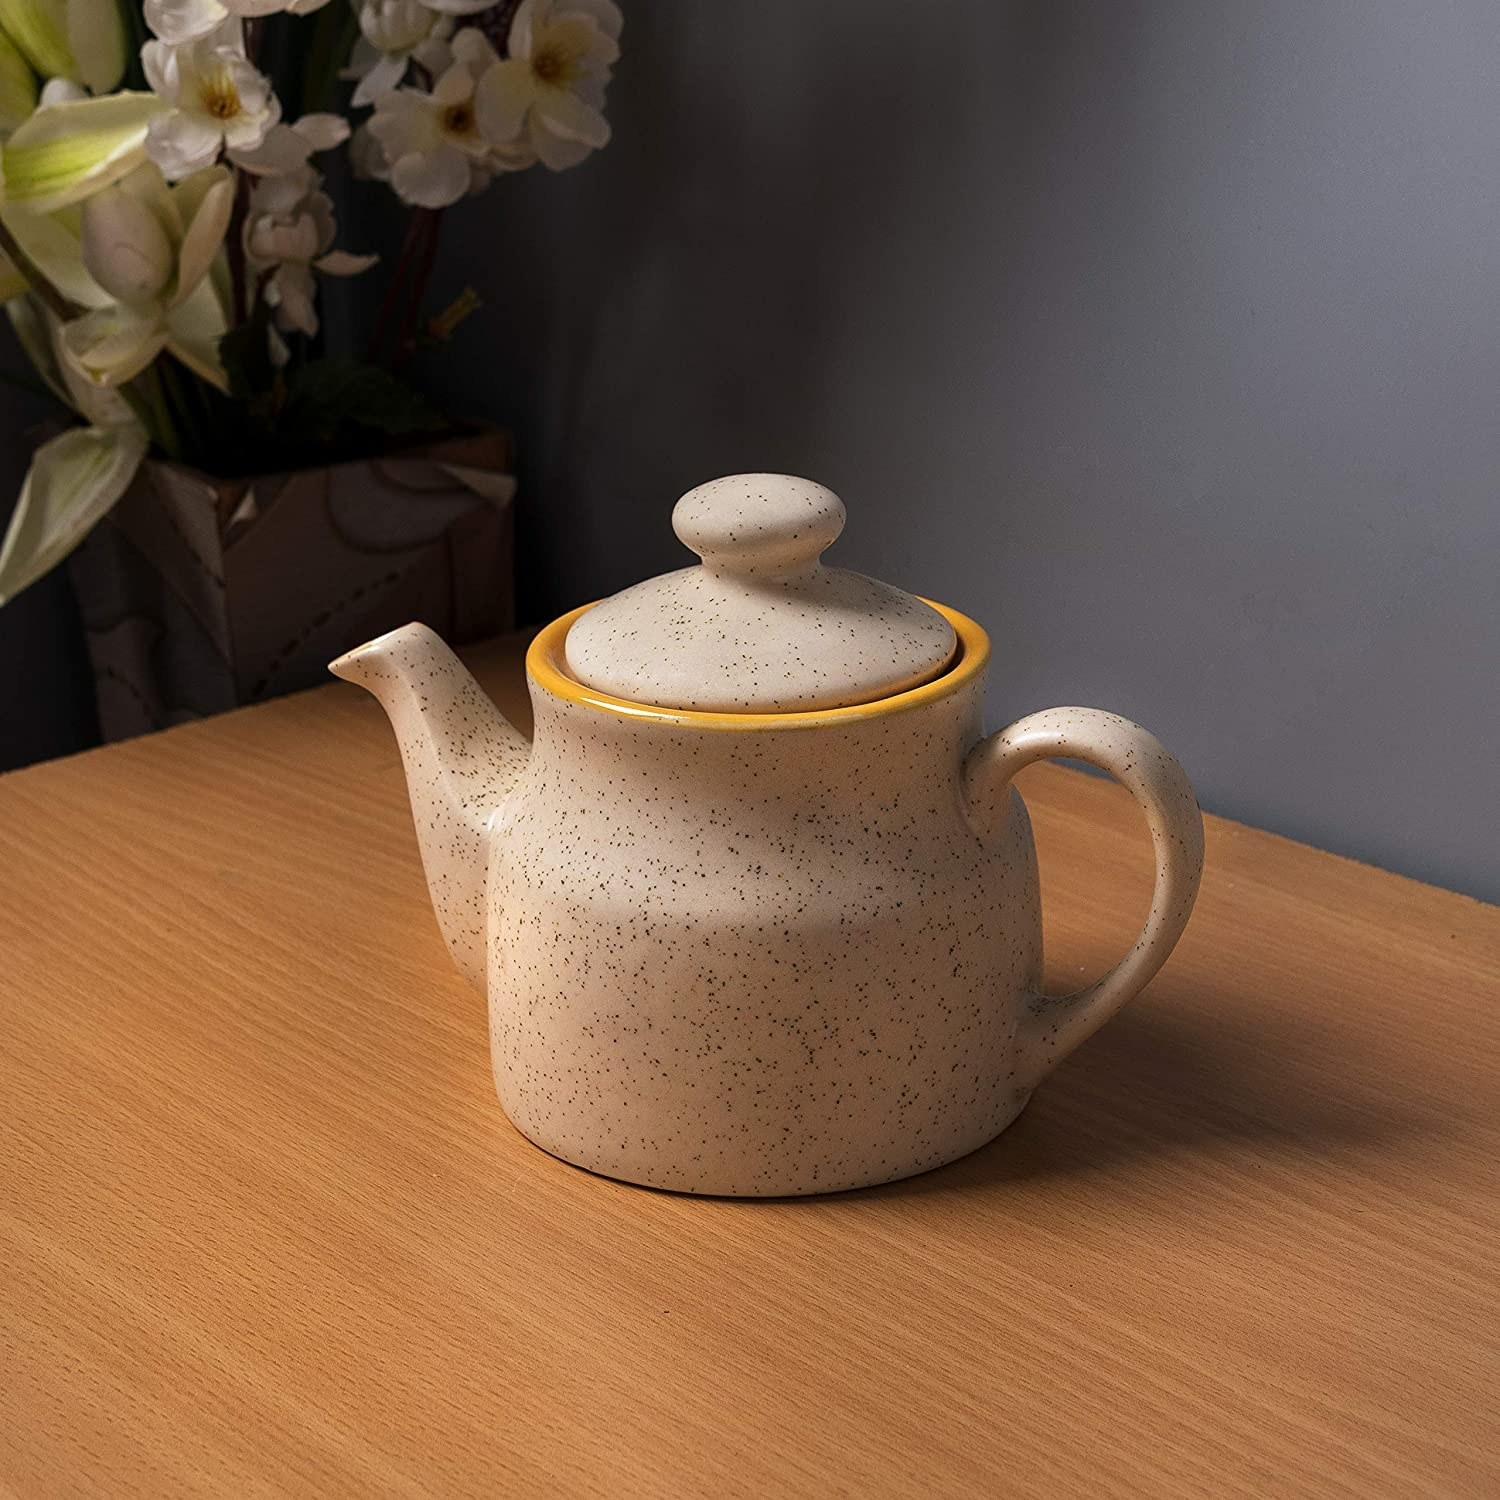 A dotted beige ceramic kettle kept on a wooden surface